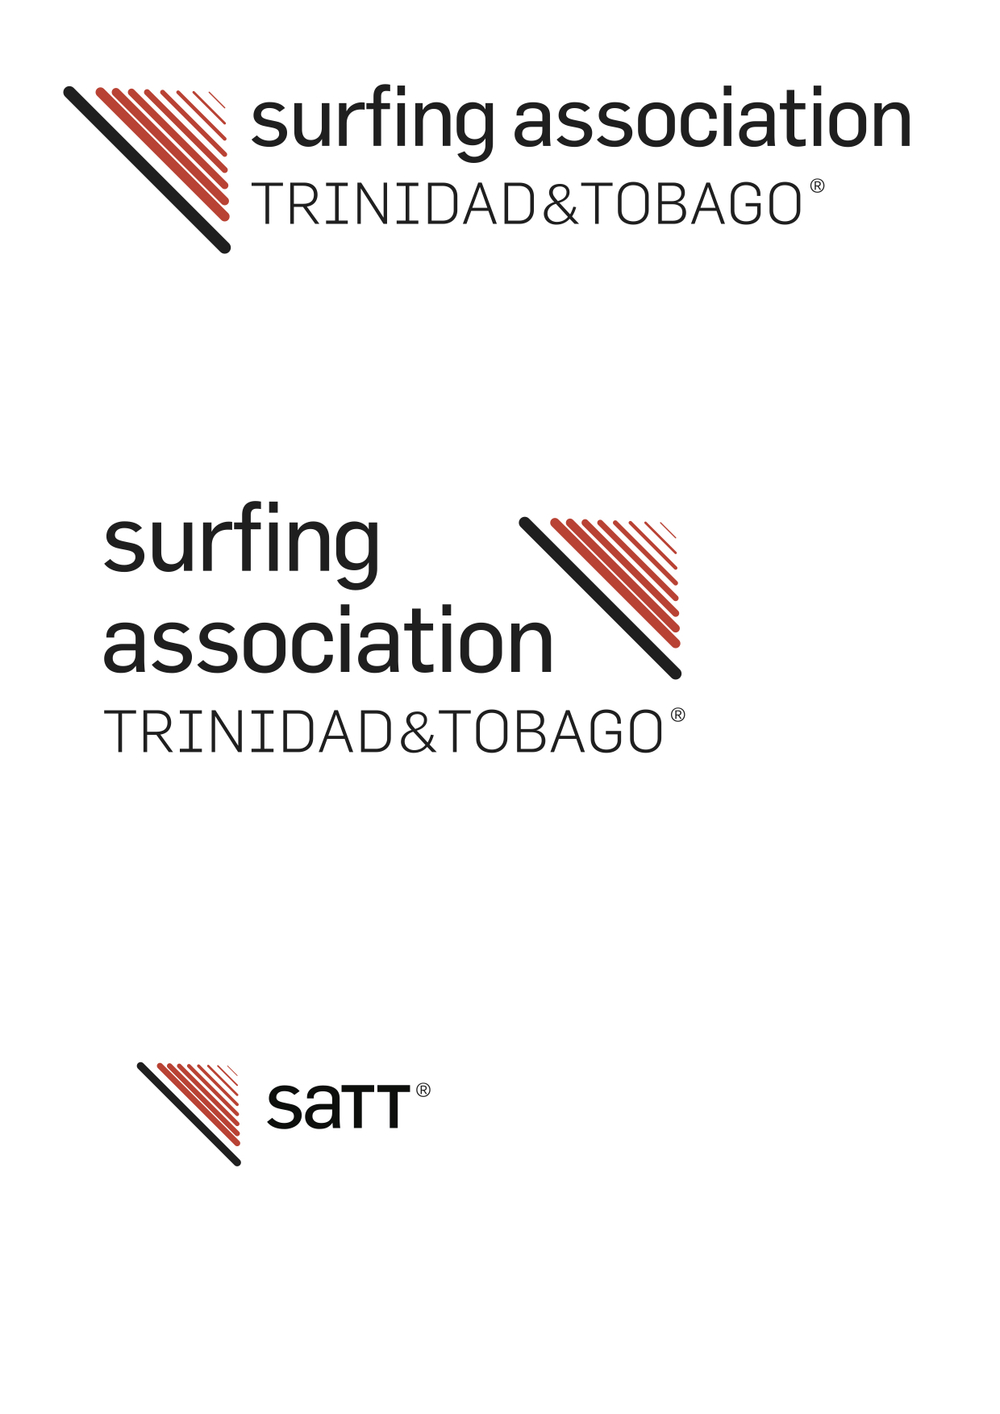 Surfing Association Trinidad & Tobago